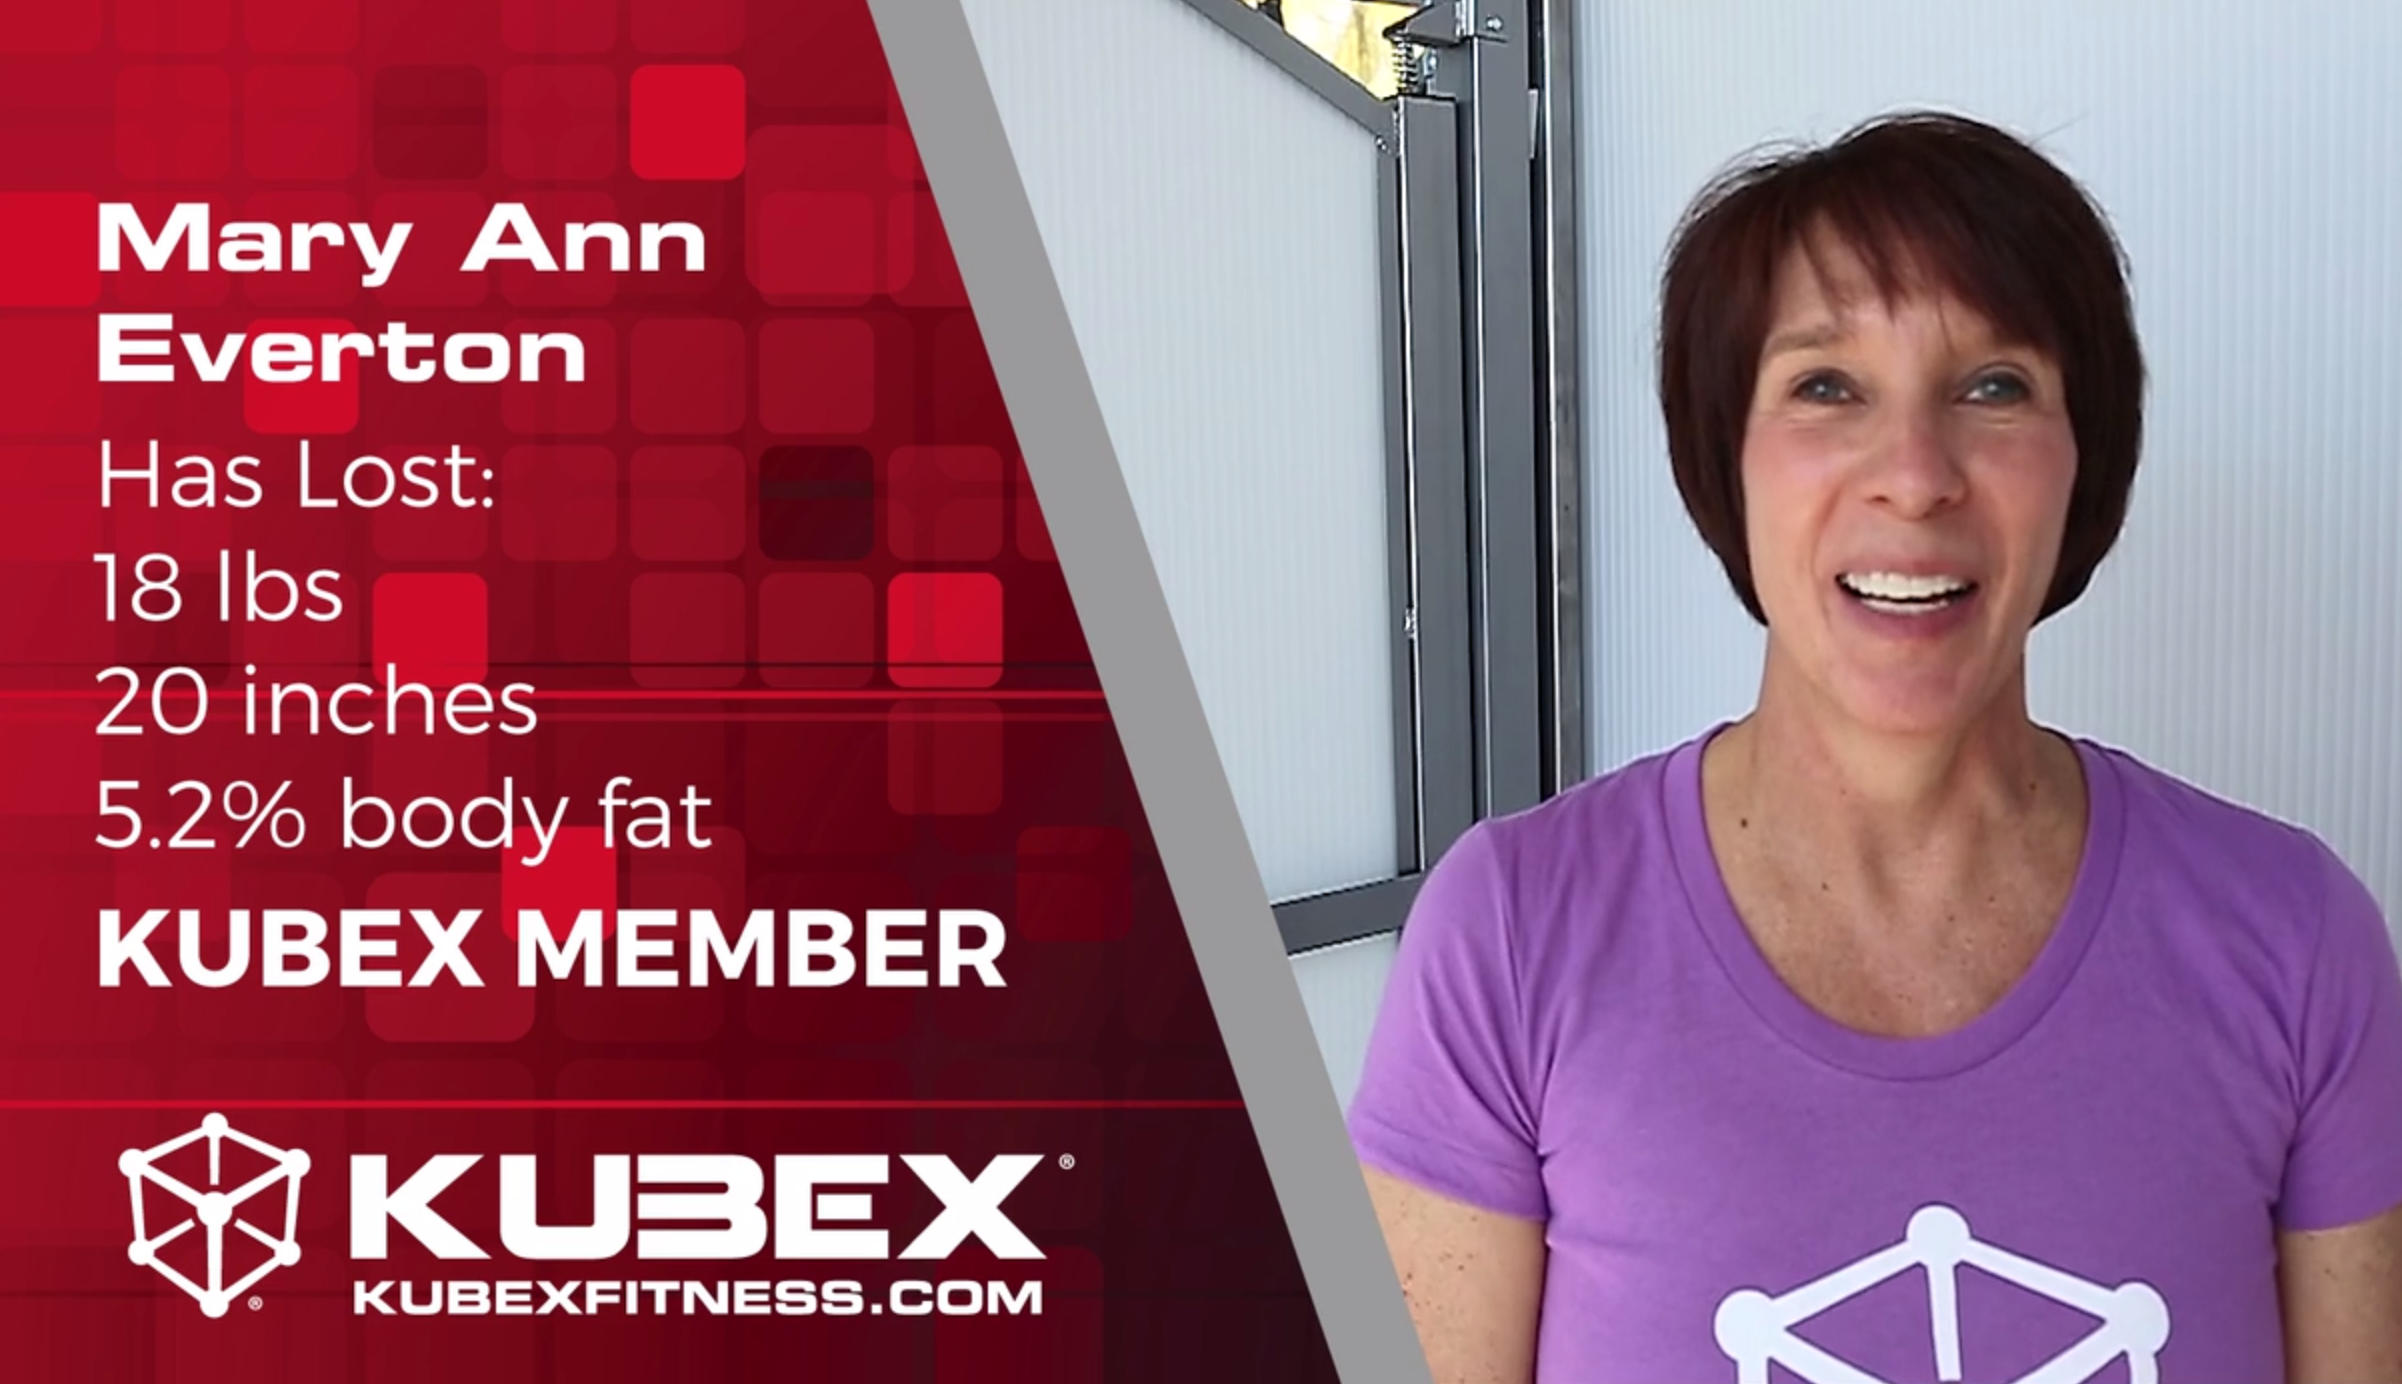 Mary Ann has lost inches, body fat, and weight at kubex gym